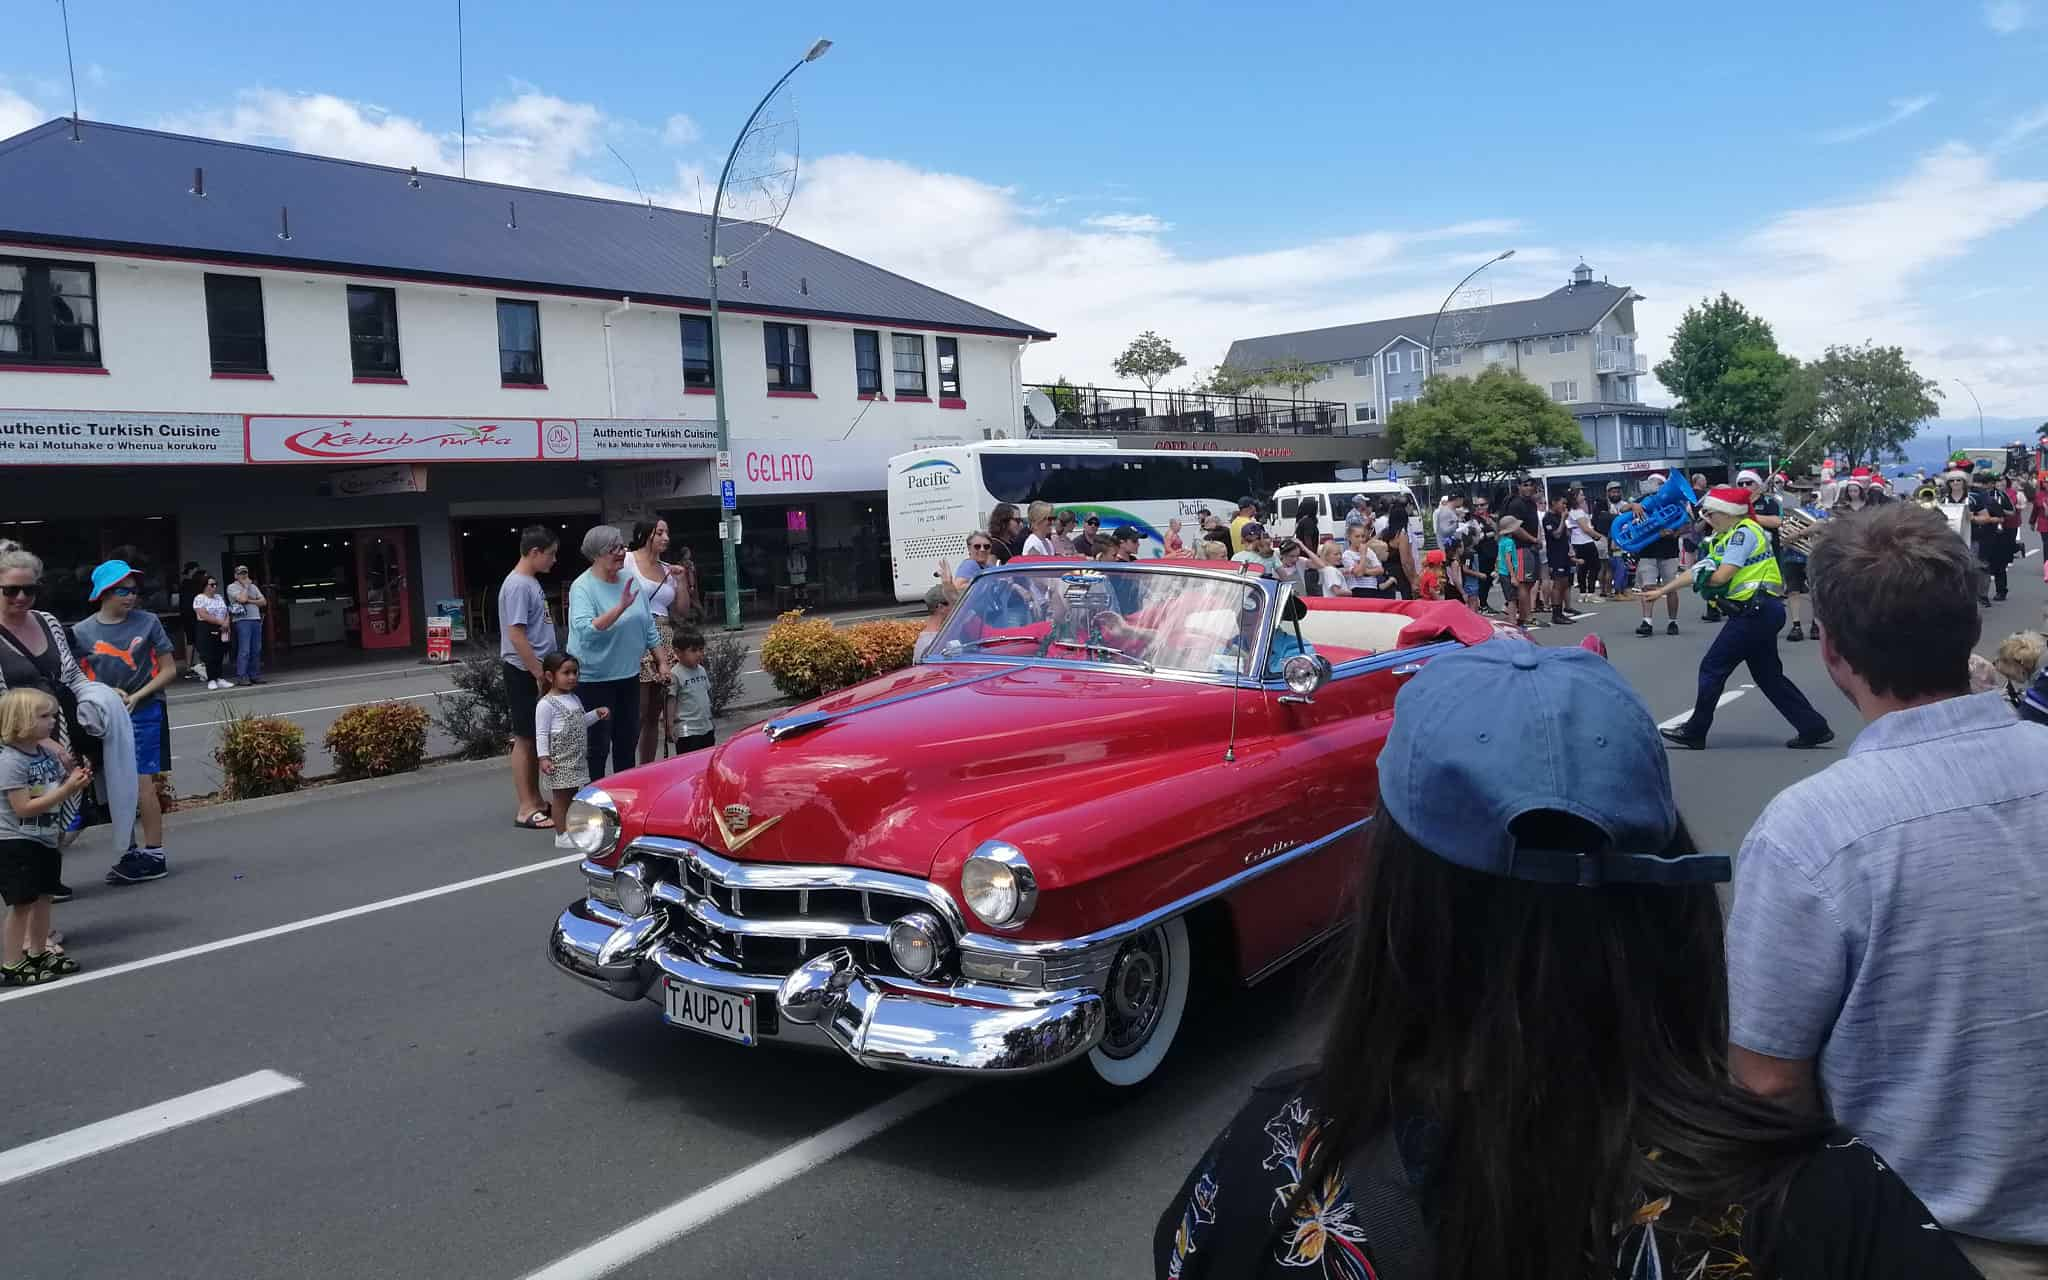 Stay-in-Taupo-Accommodation-Bed-and-Breakfast-in-Taupo-Waikato-New-Zealand-14